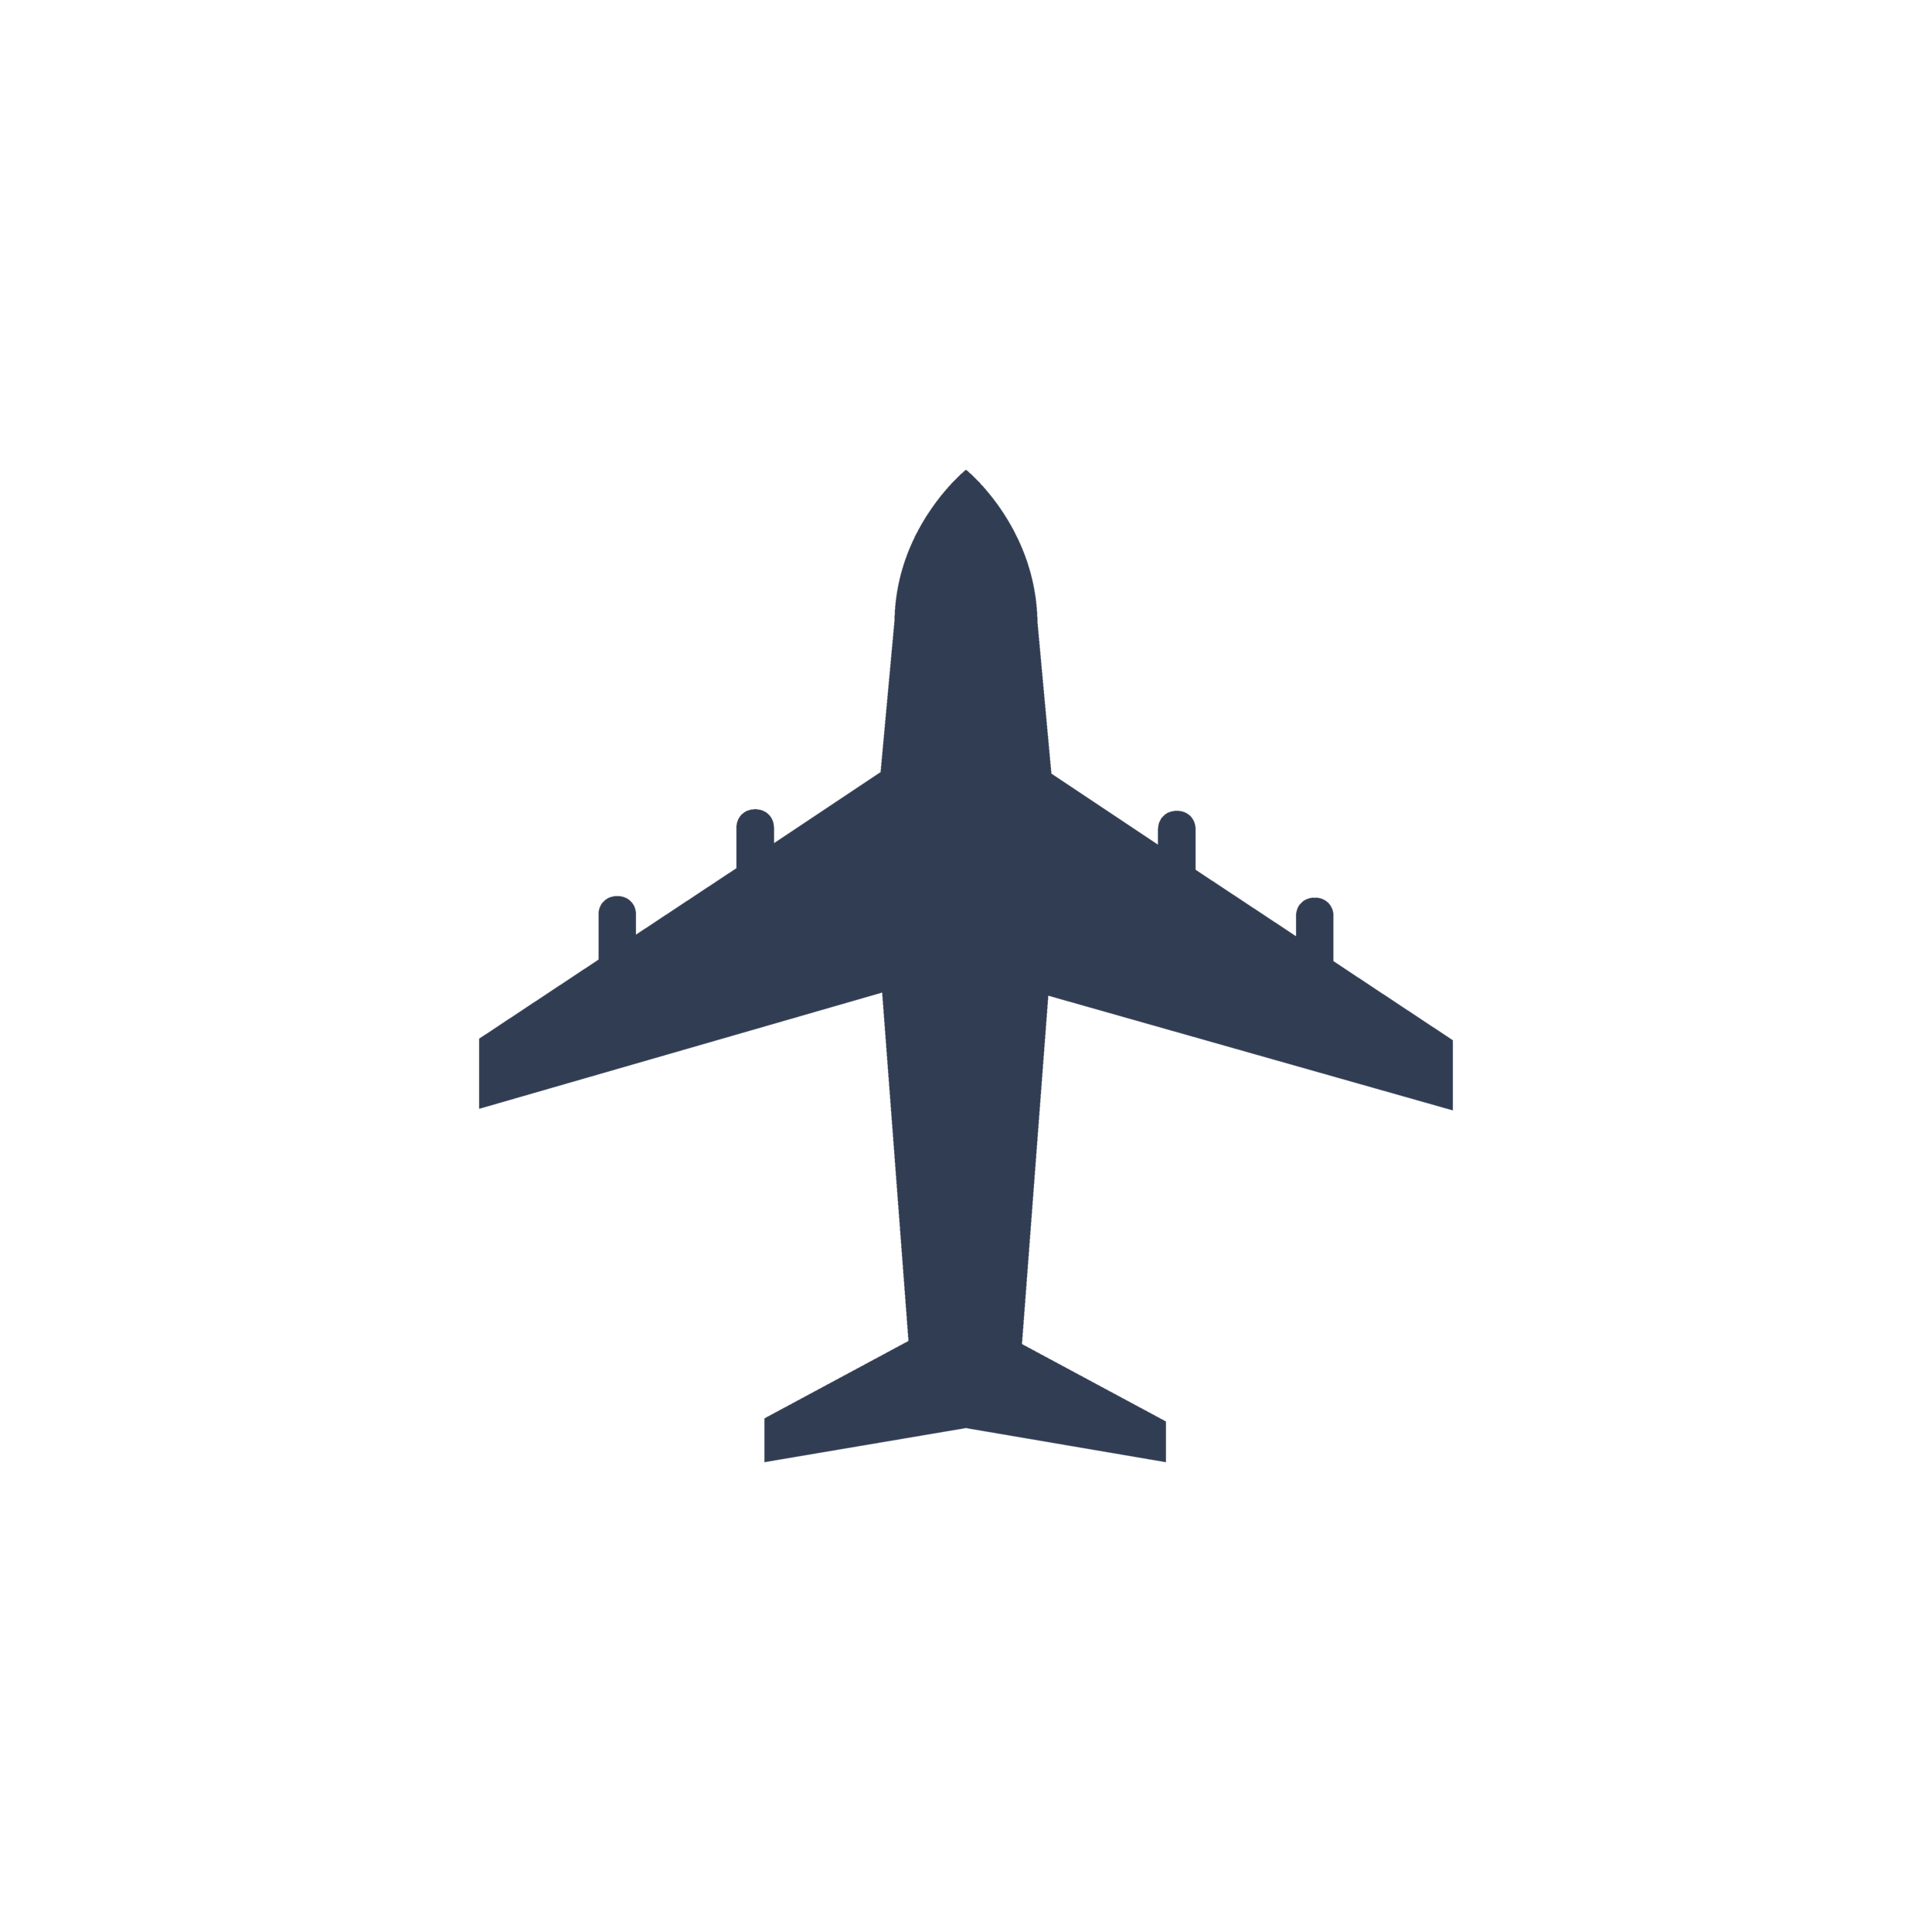 passport-beerlandia-plane-icon-01.png